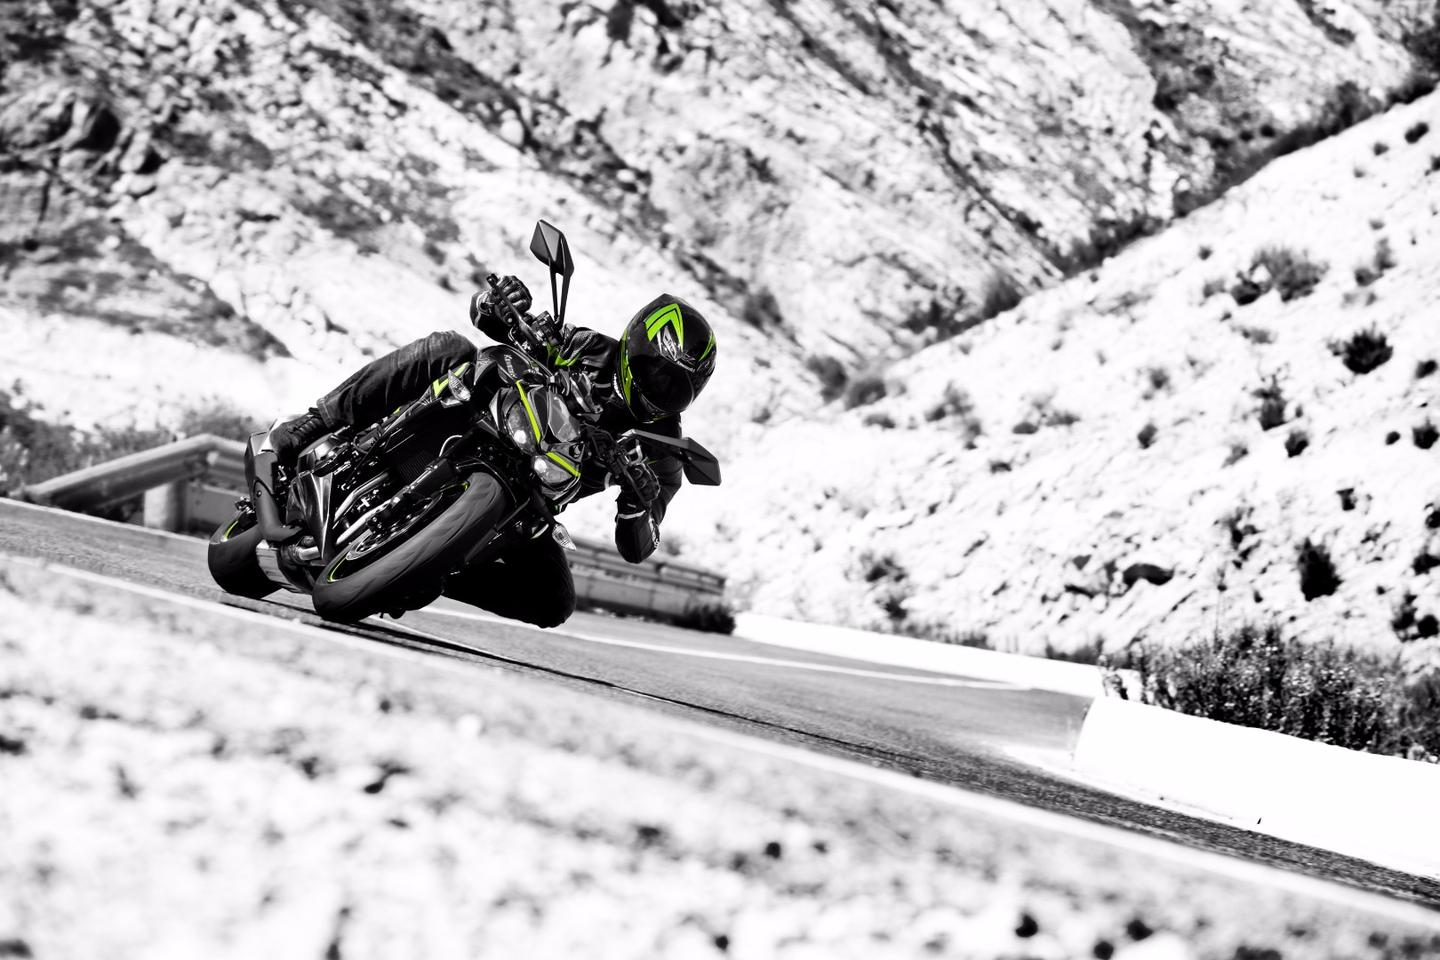 The 2017 Kawasaki Z1000 R Edition in action